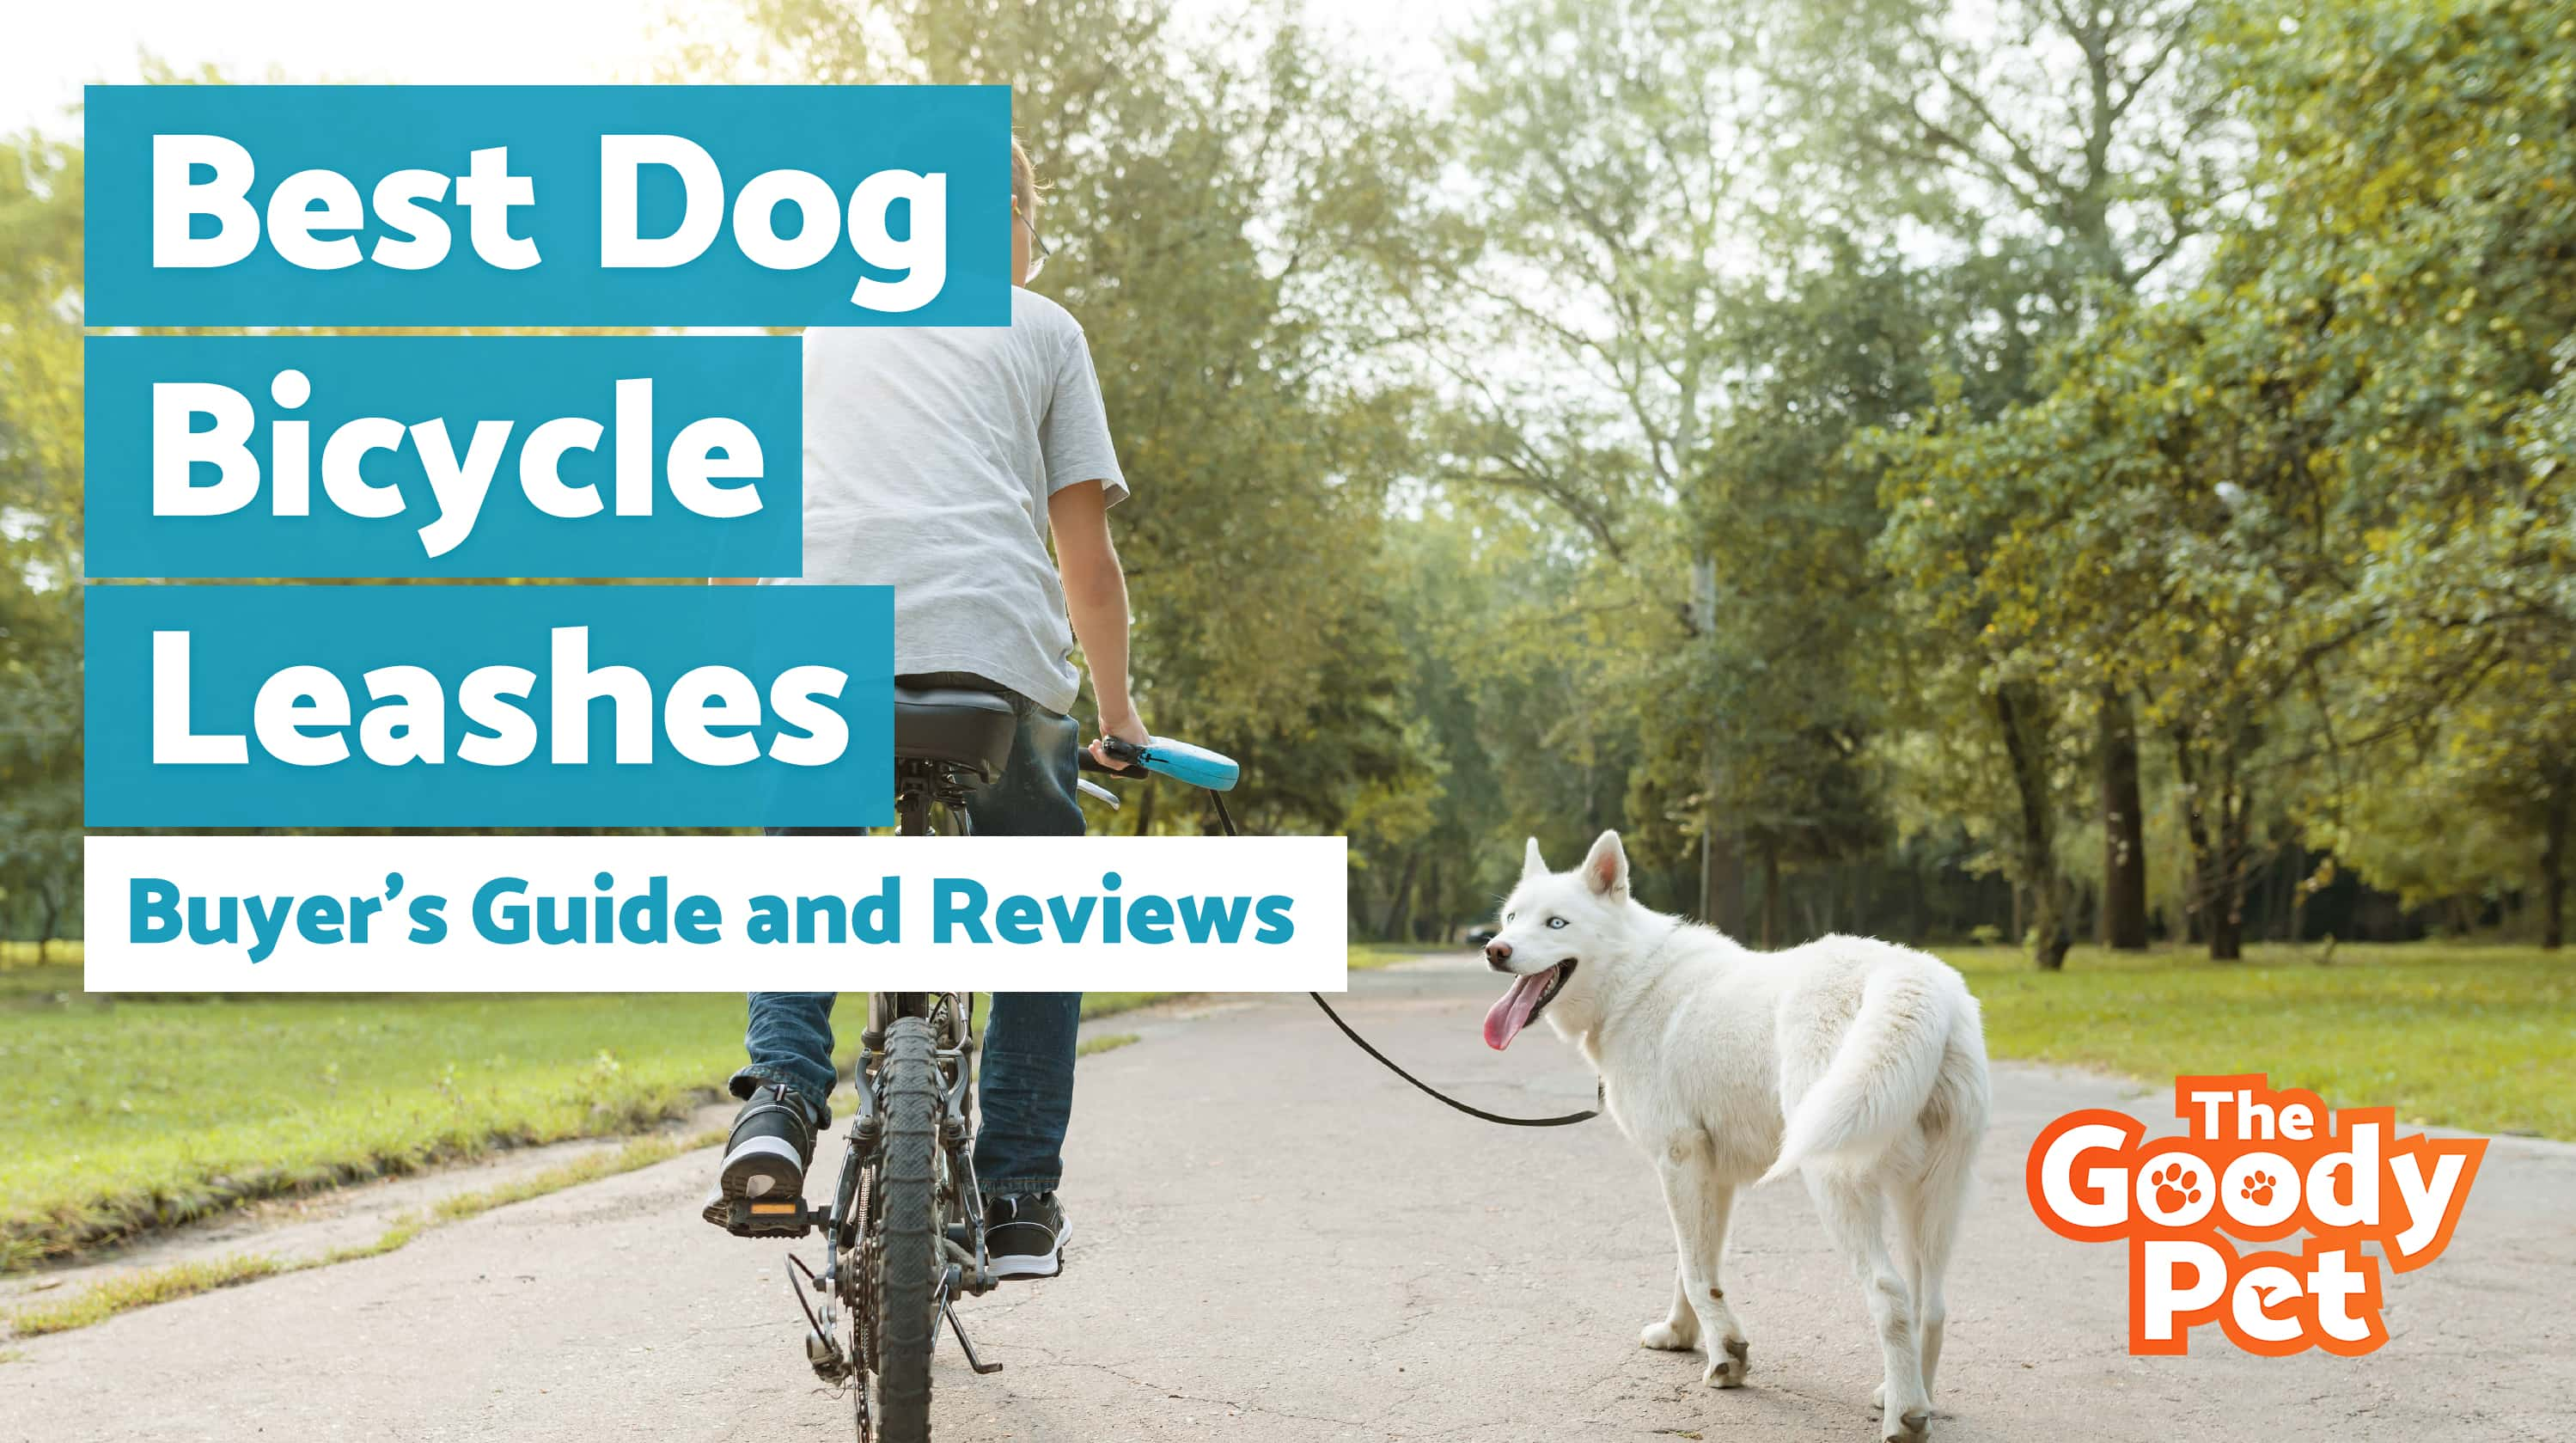 Best Dog Leash For Bicycle Riding With Your Pooch – Our 2019 Reviews & Top Picks